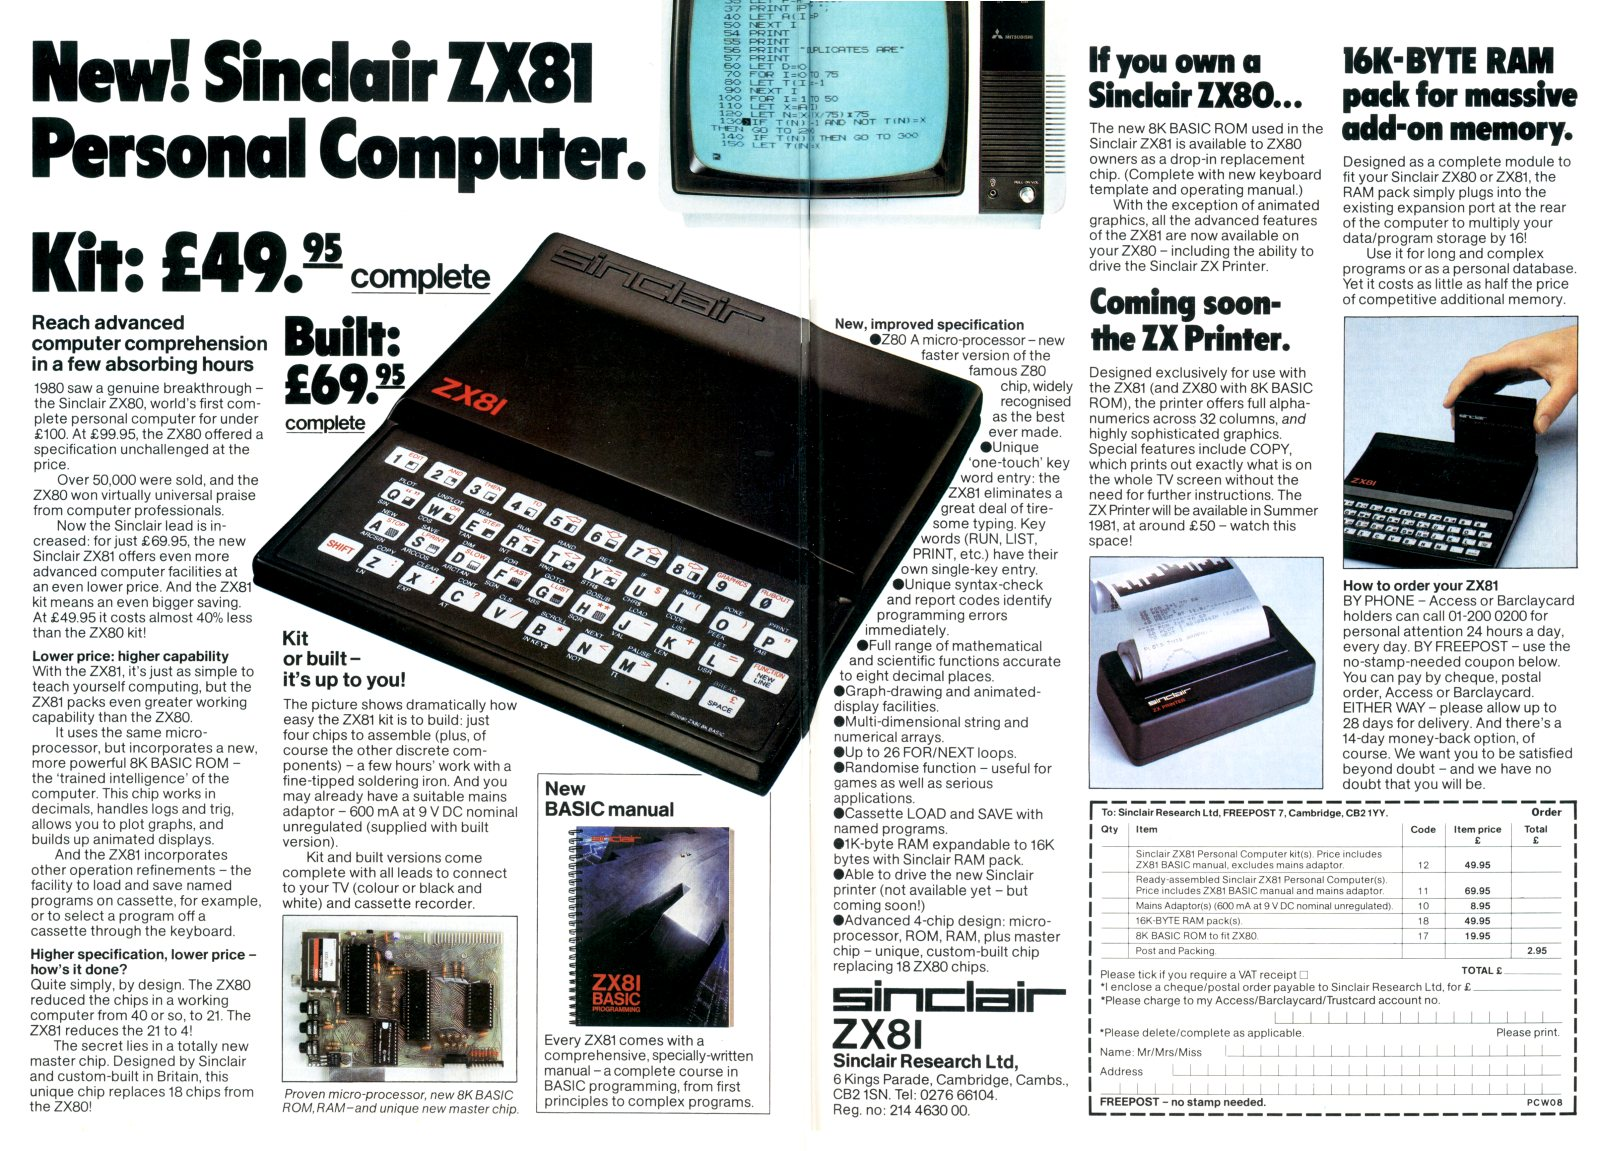 IMAGE(http://steveffisher.files.wordpress.com/2011/03/zx81ad.jpg)